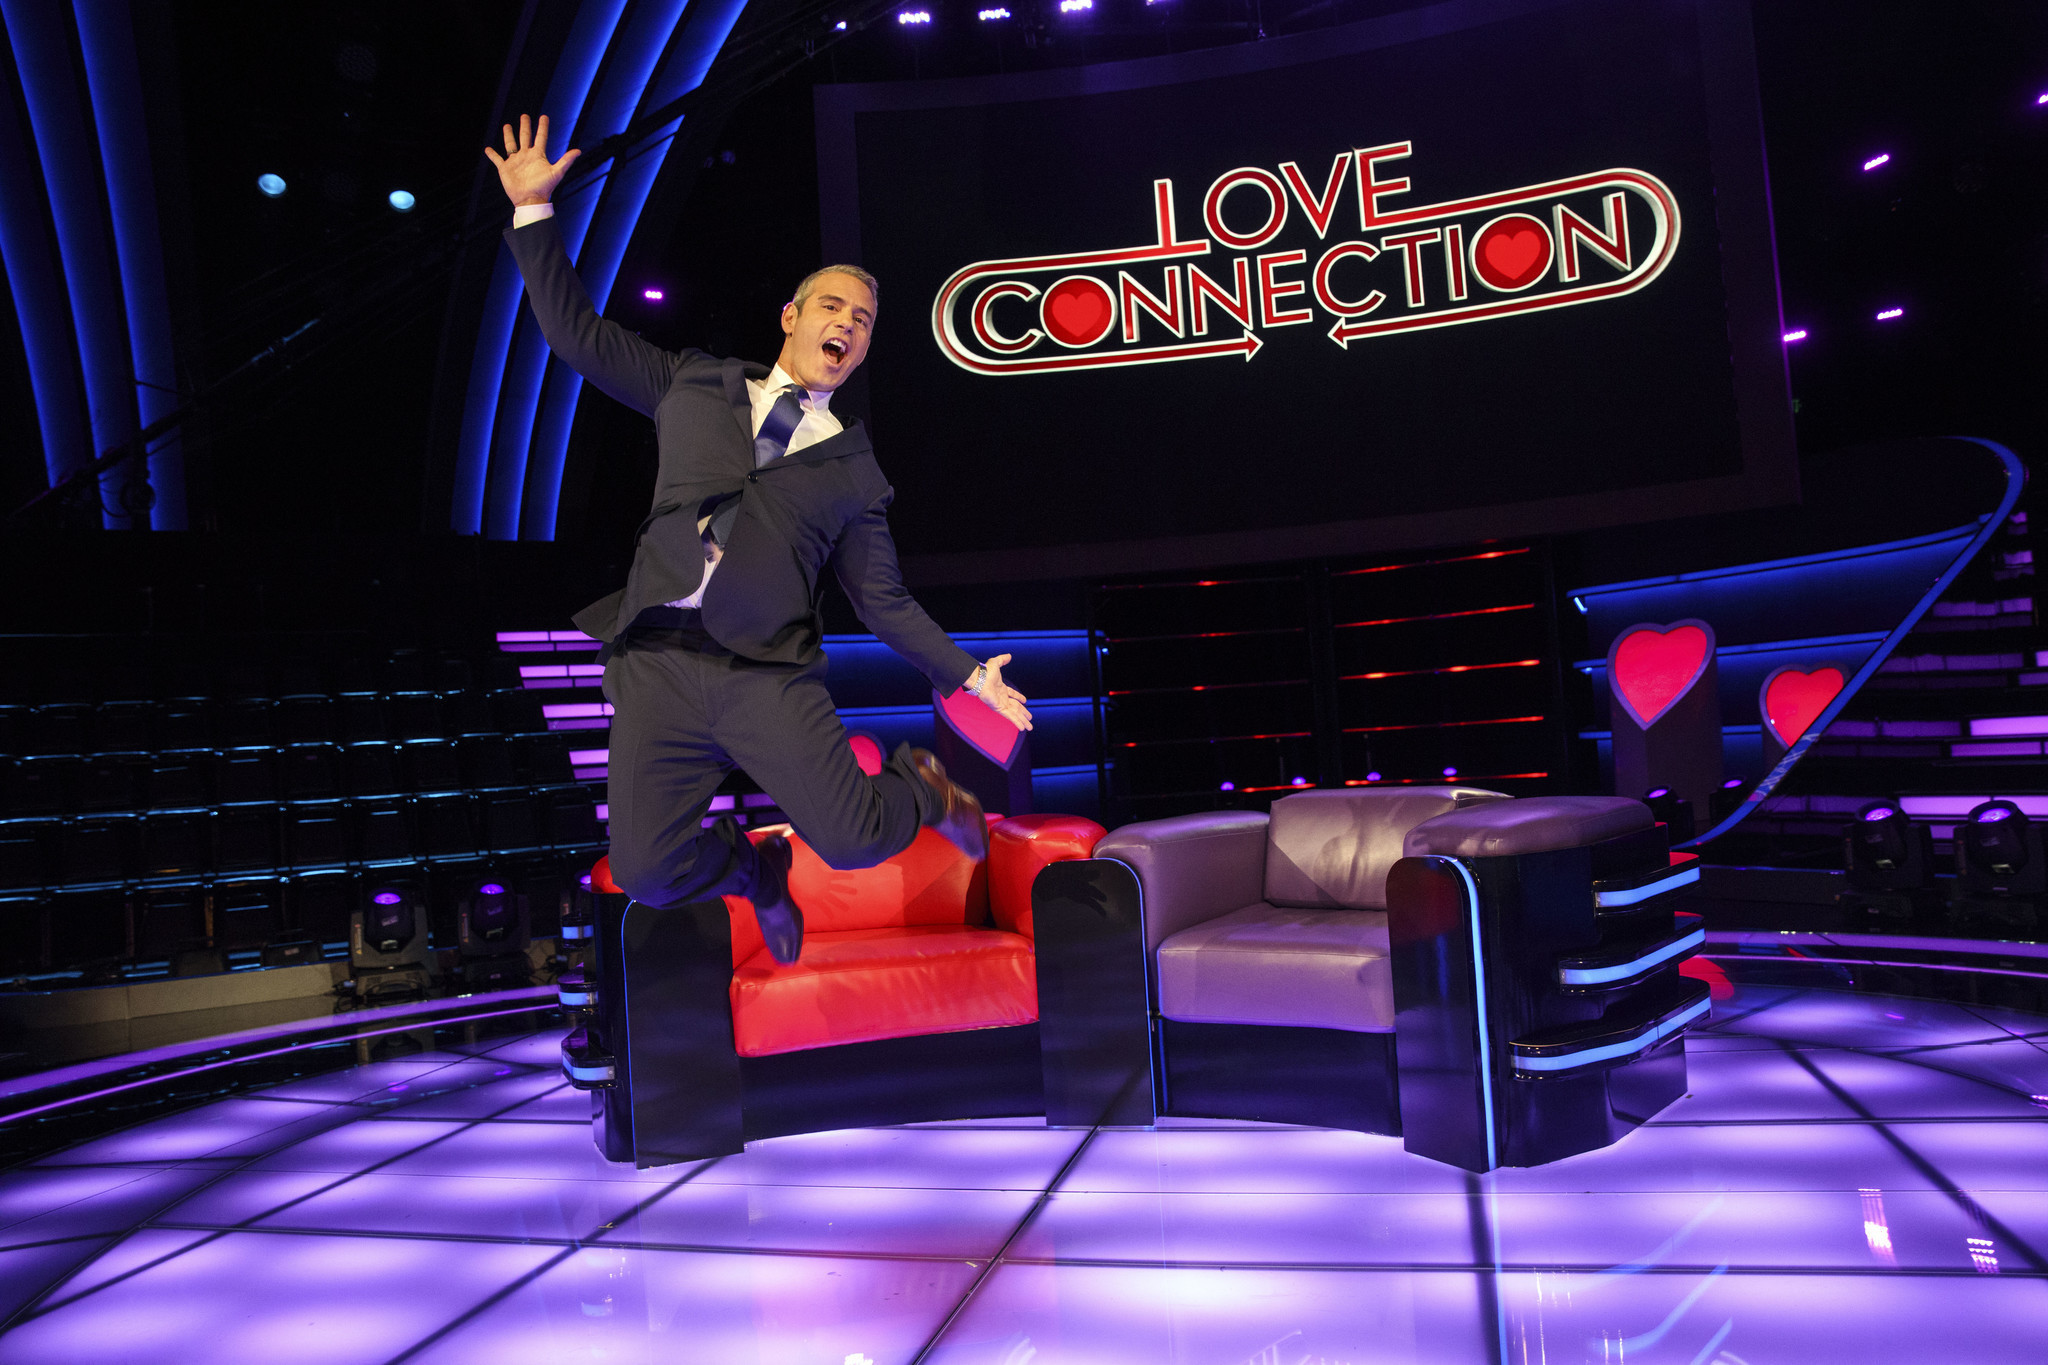 dating show love connection Elyse and david create a lasting bond | season 1 ep 12 | love subscribe now for more love connection clips: andy rodin love connection/dating game - duration: 18:41 andy.